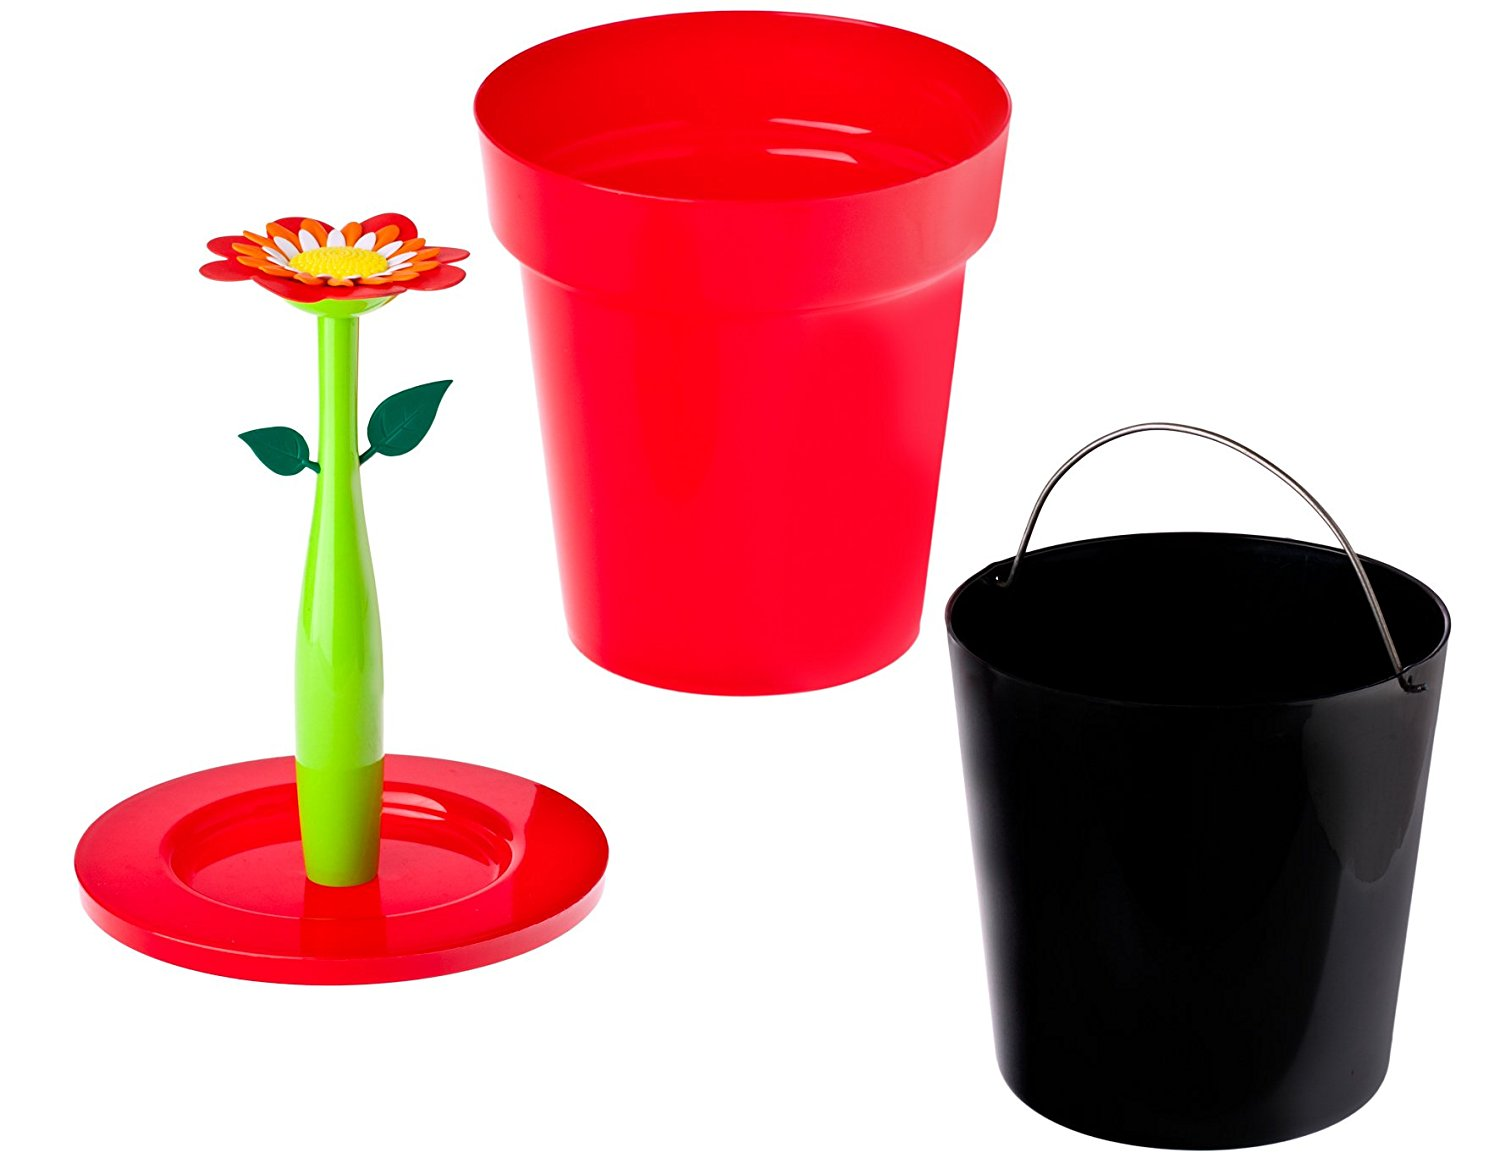 Vigar Flower red bin